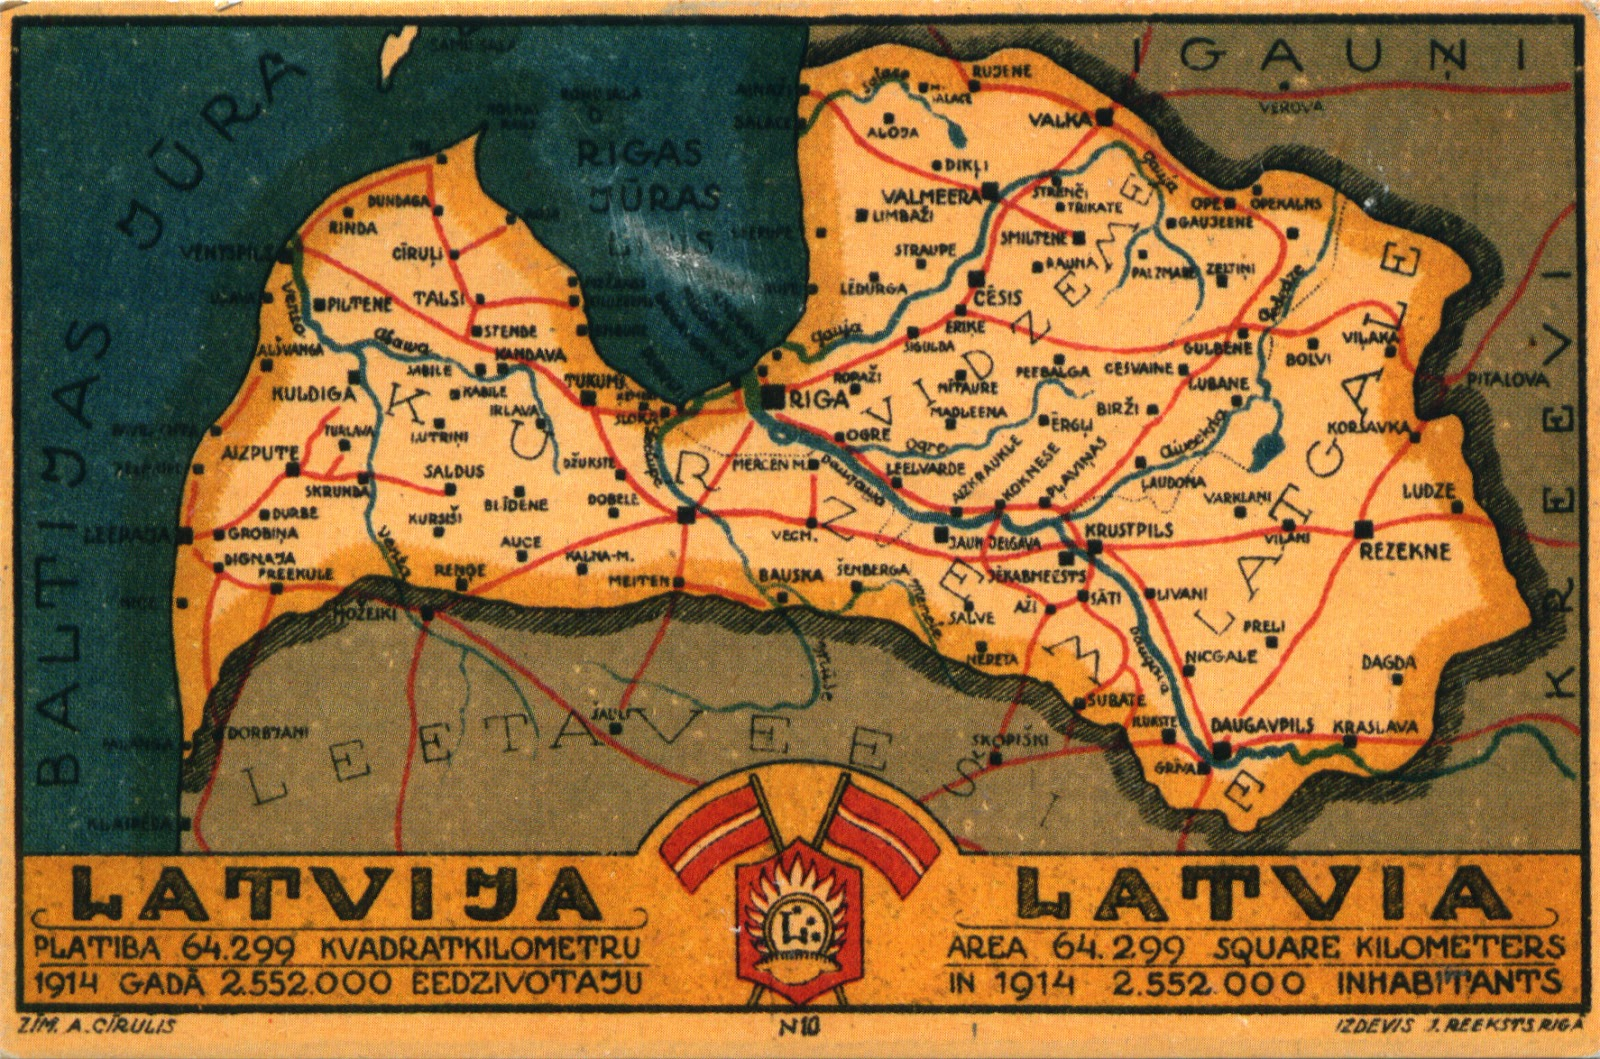 map of europe 1919.html with 0541 Latvia Map Of Country In 1919 on Blank Map Of Europe 1919 likewise Telegraphs Of Mexico 1919 further Map Of Europe 1919 further Aguascalientes Chihuahua Cordoba Cuernavaca Hermosillo Merida 1919 moreover 0541 Latvia Map Of Country In 1919.